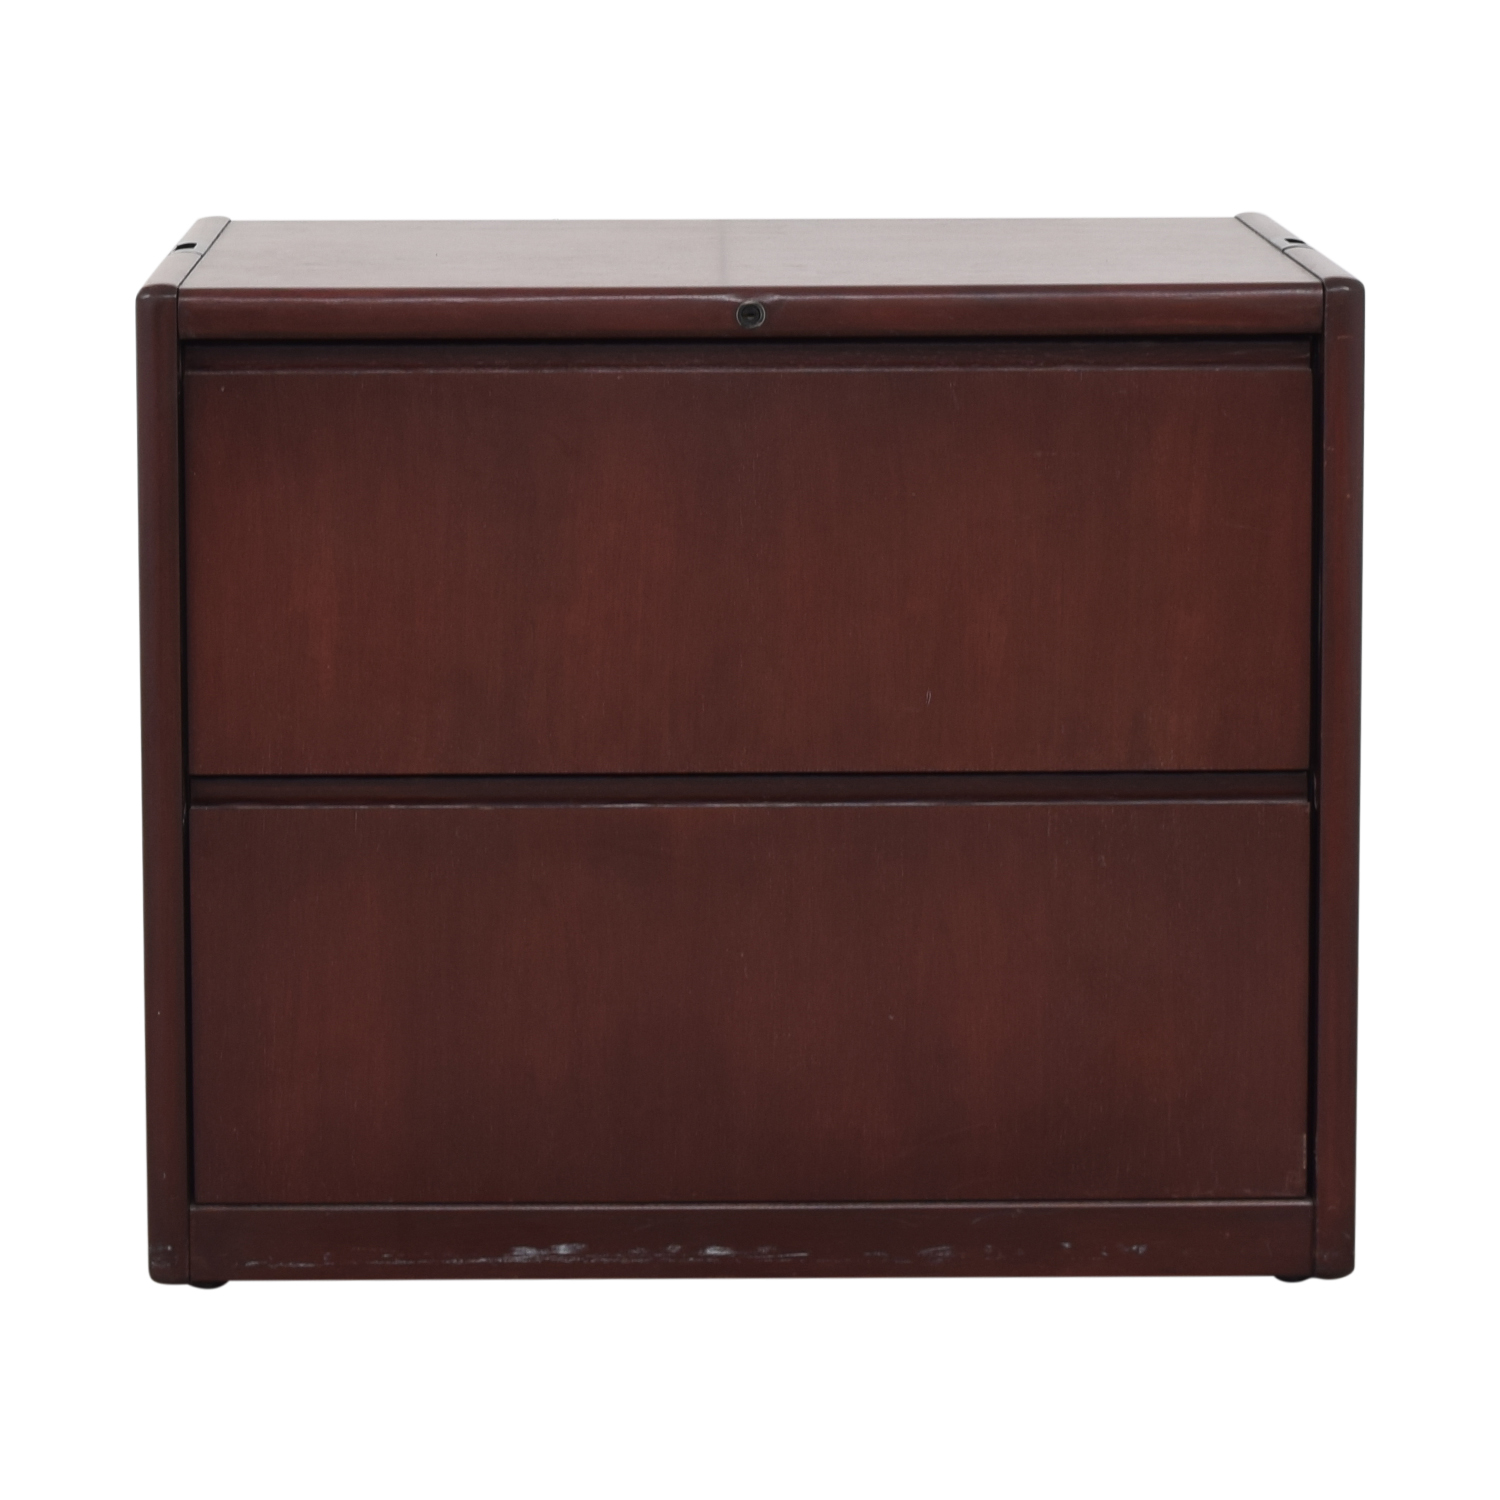 Two-Drawer Filing Cabinet sale